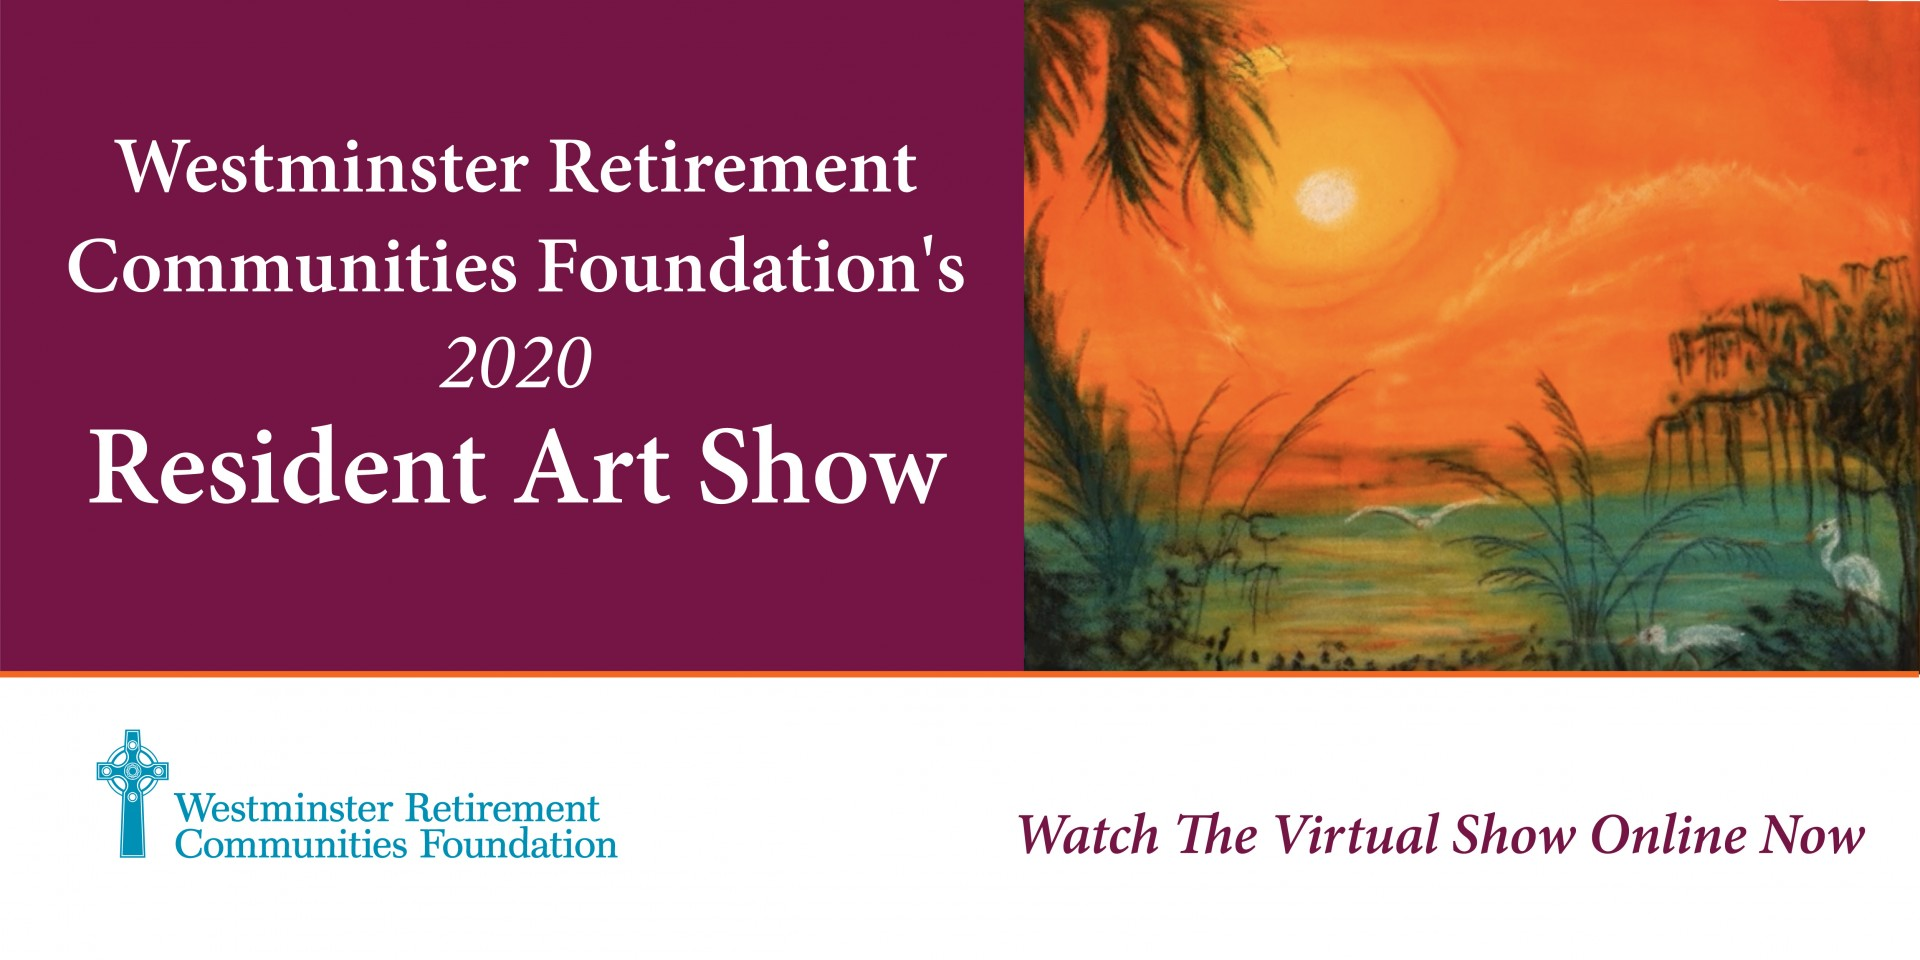 Westminster Retirement Communities Foundation's Resident Art Show